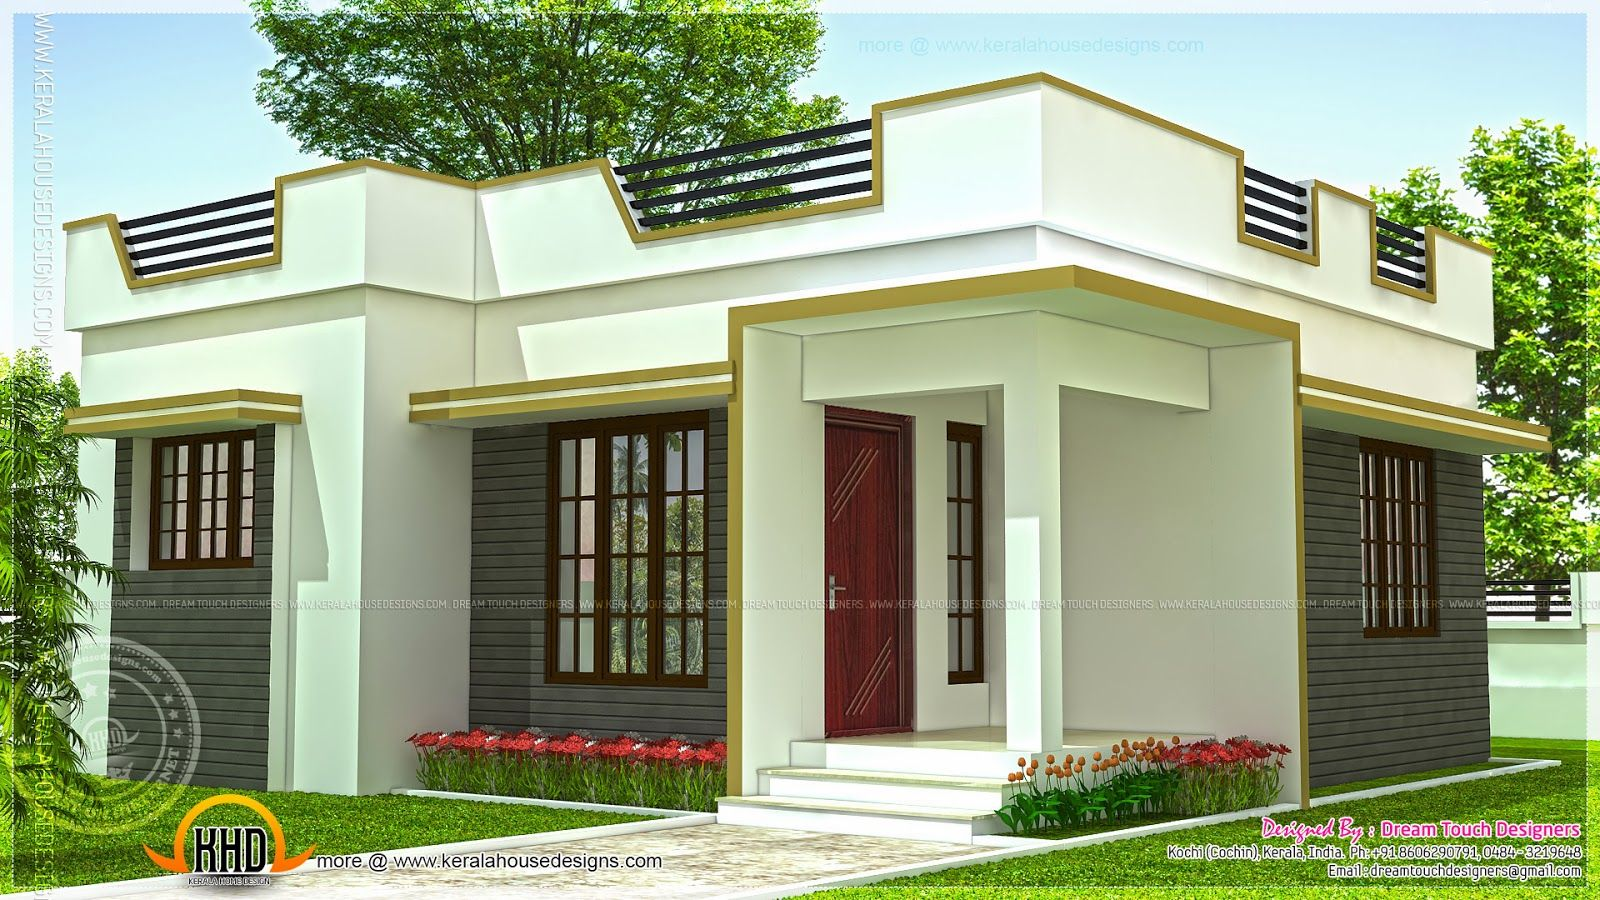 Kerala Small House Low Budget Plan Modern Plans Blog | modern house on home painter, home luxury, home modern, web designer, home interior decor, home architecture, home designing, home silhouette, home lighting, home contractor, home builder, lighting designer, home wedding, home colour, home design gallery, home interior design, home beauty, home planner, home design awards, home photography, graphic designer, home design studio, interior designer,